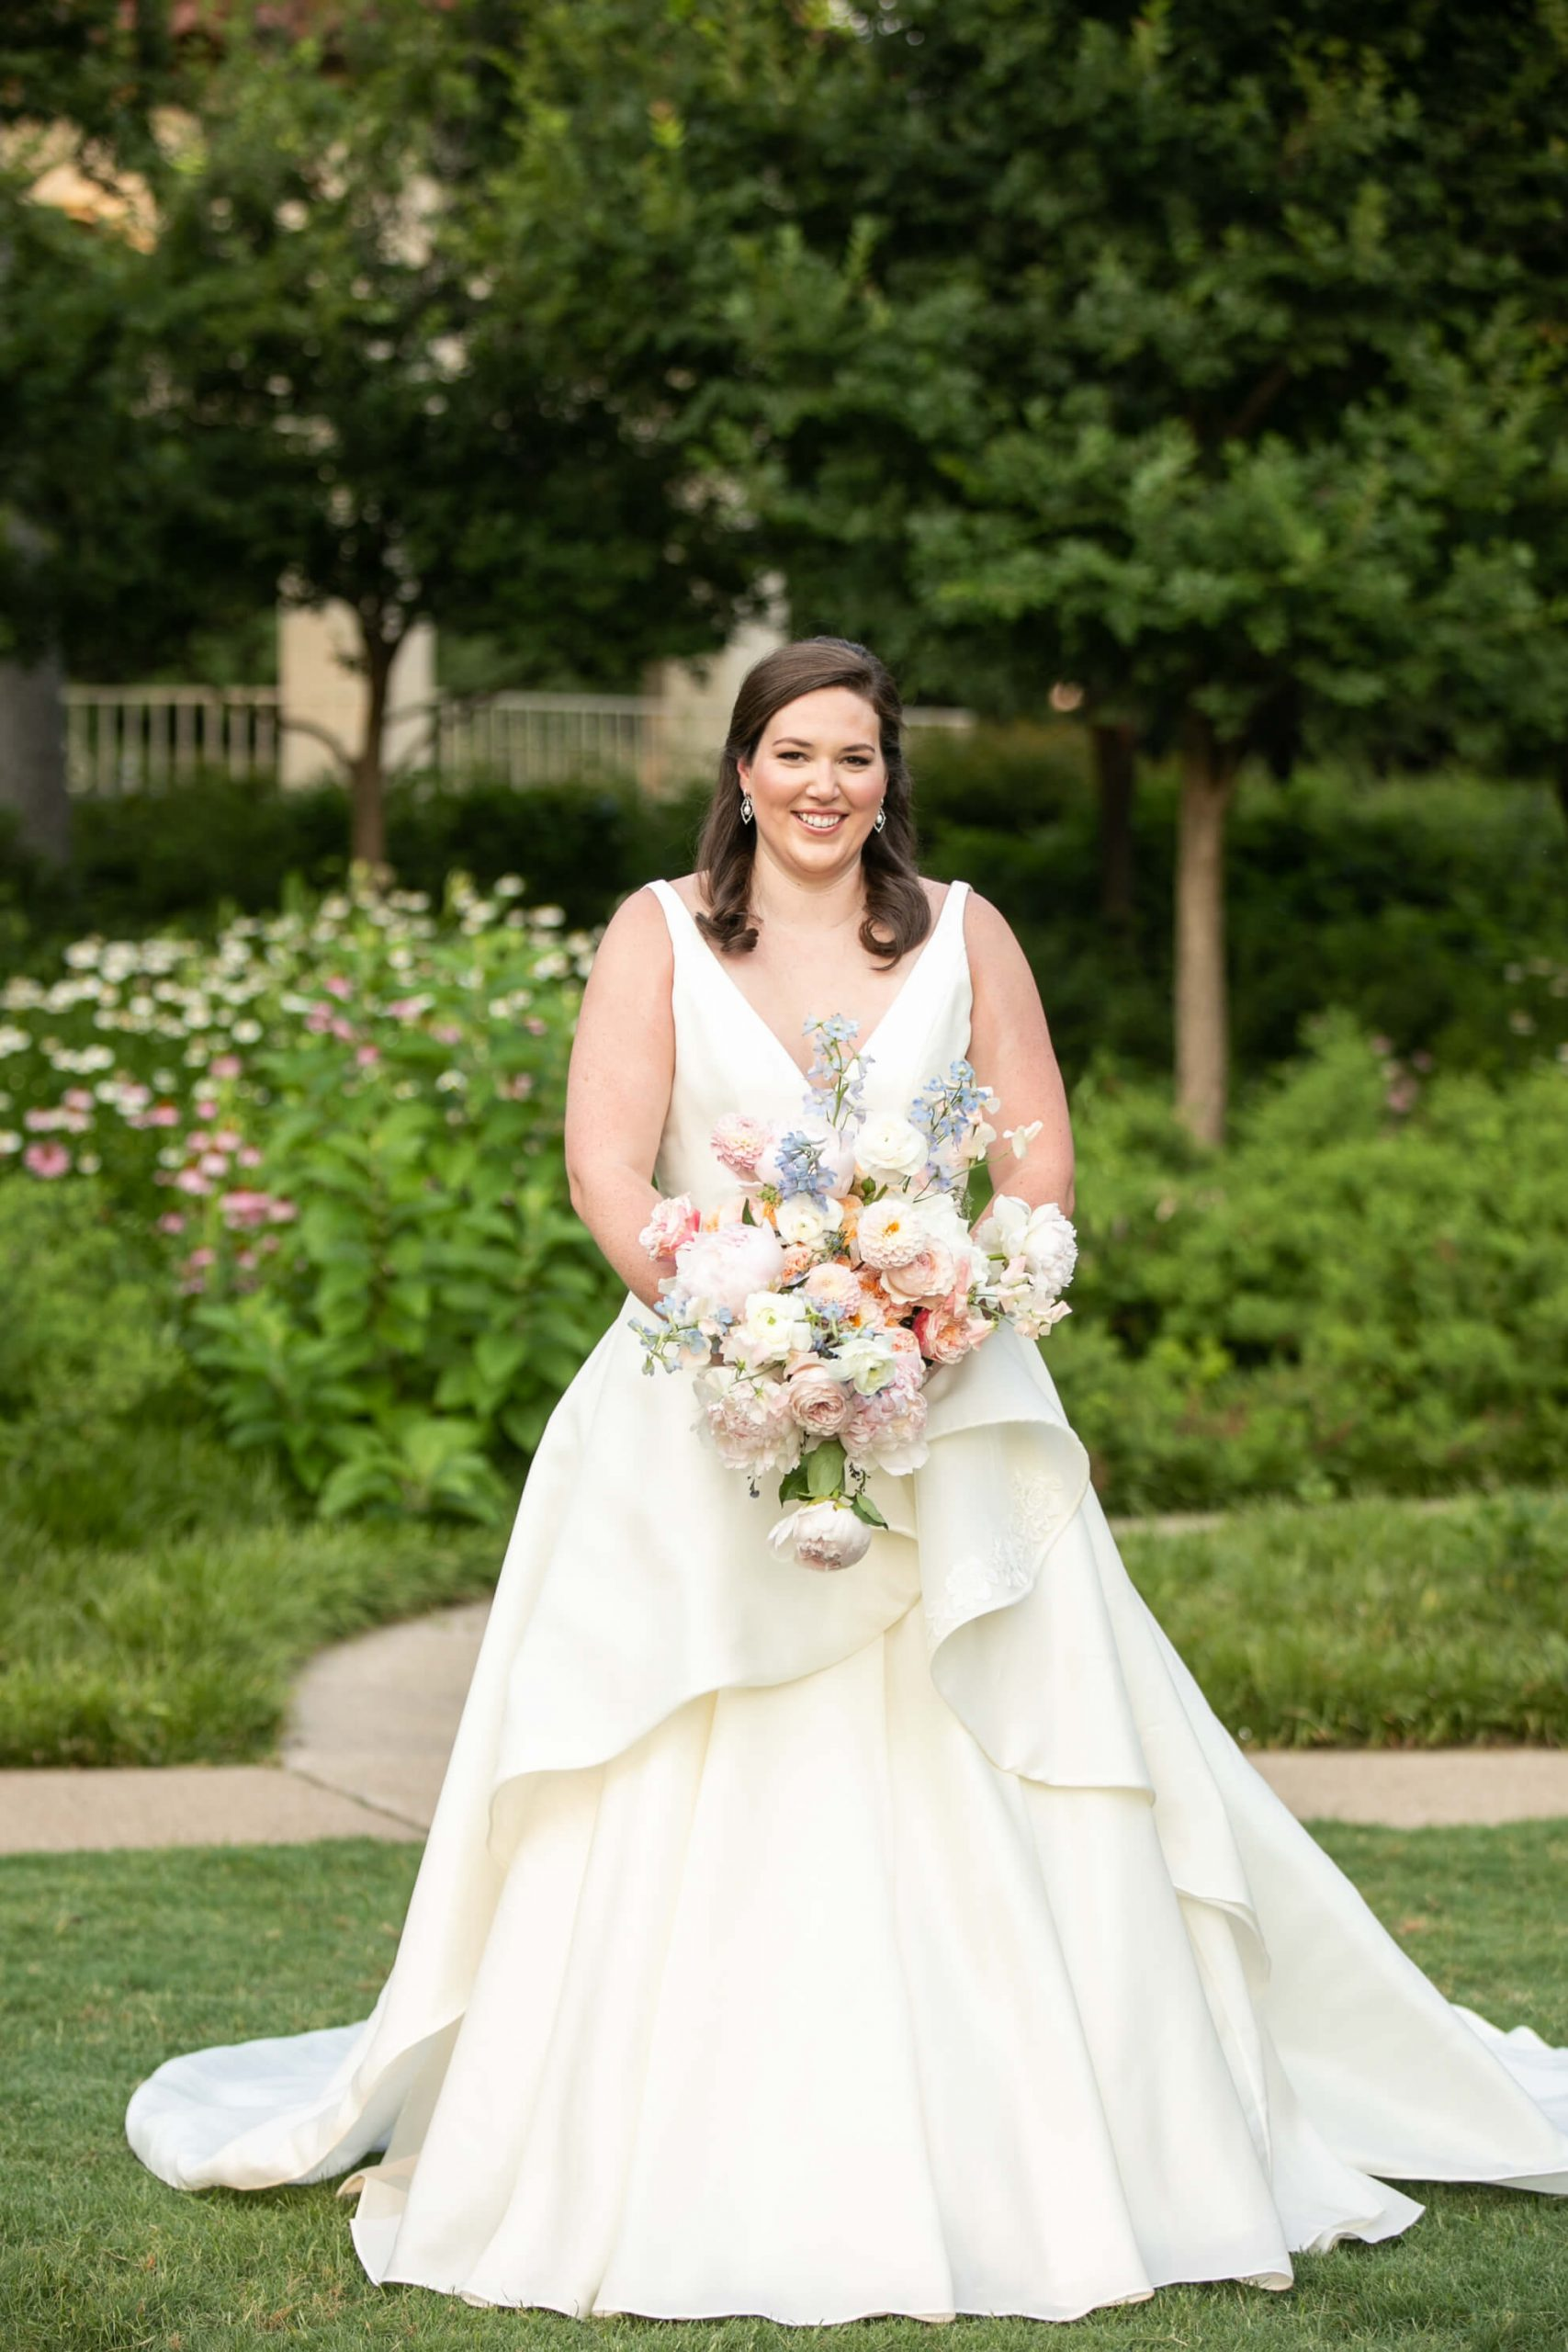 Carole Anne in her bridal gown in a park with bouquet